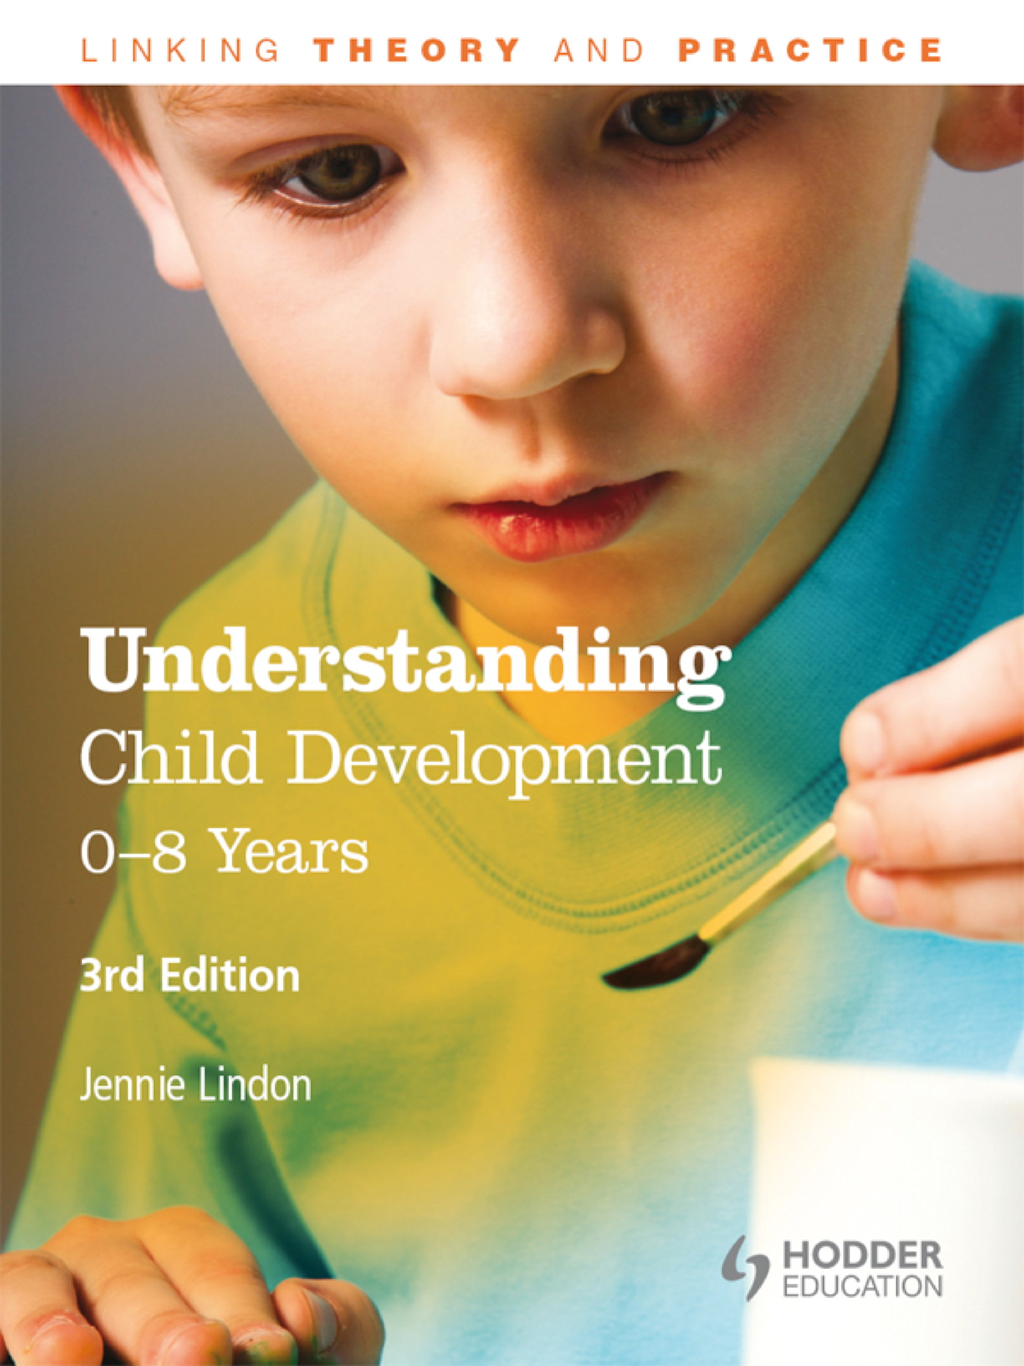 Understanding Child Development: 0-8 Years,  3rd Edition